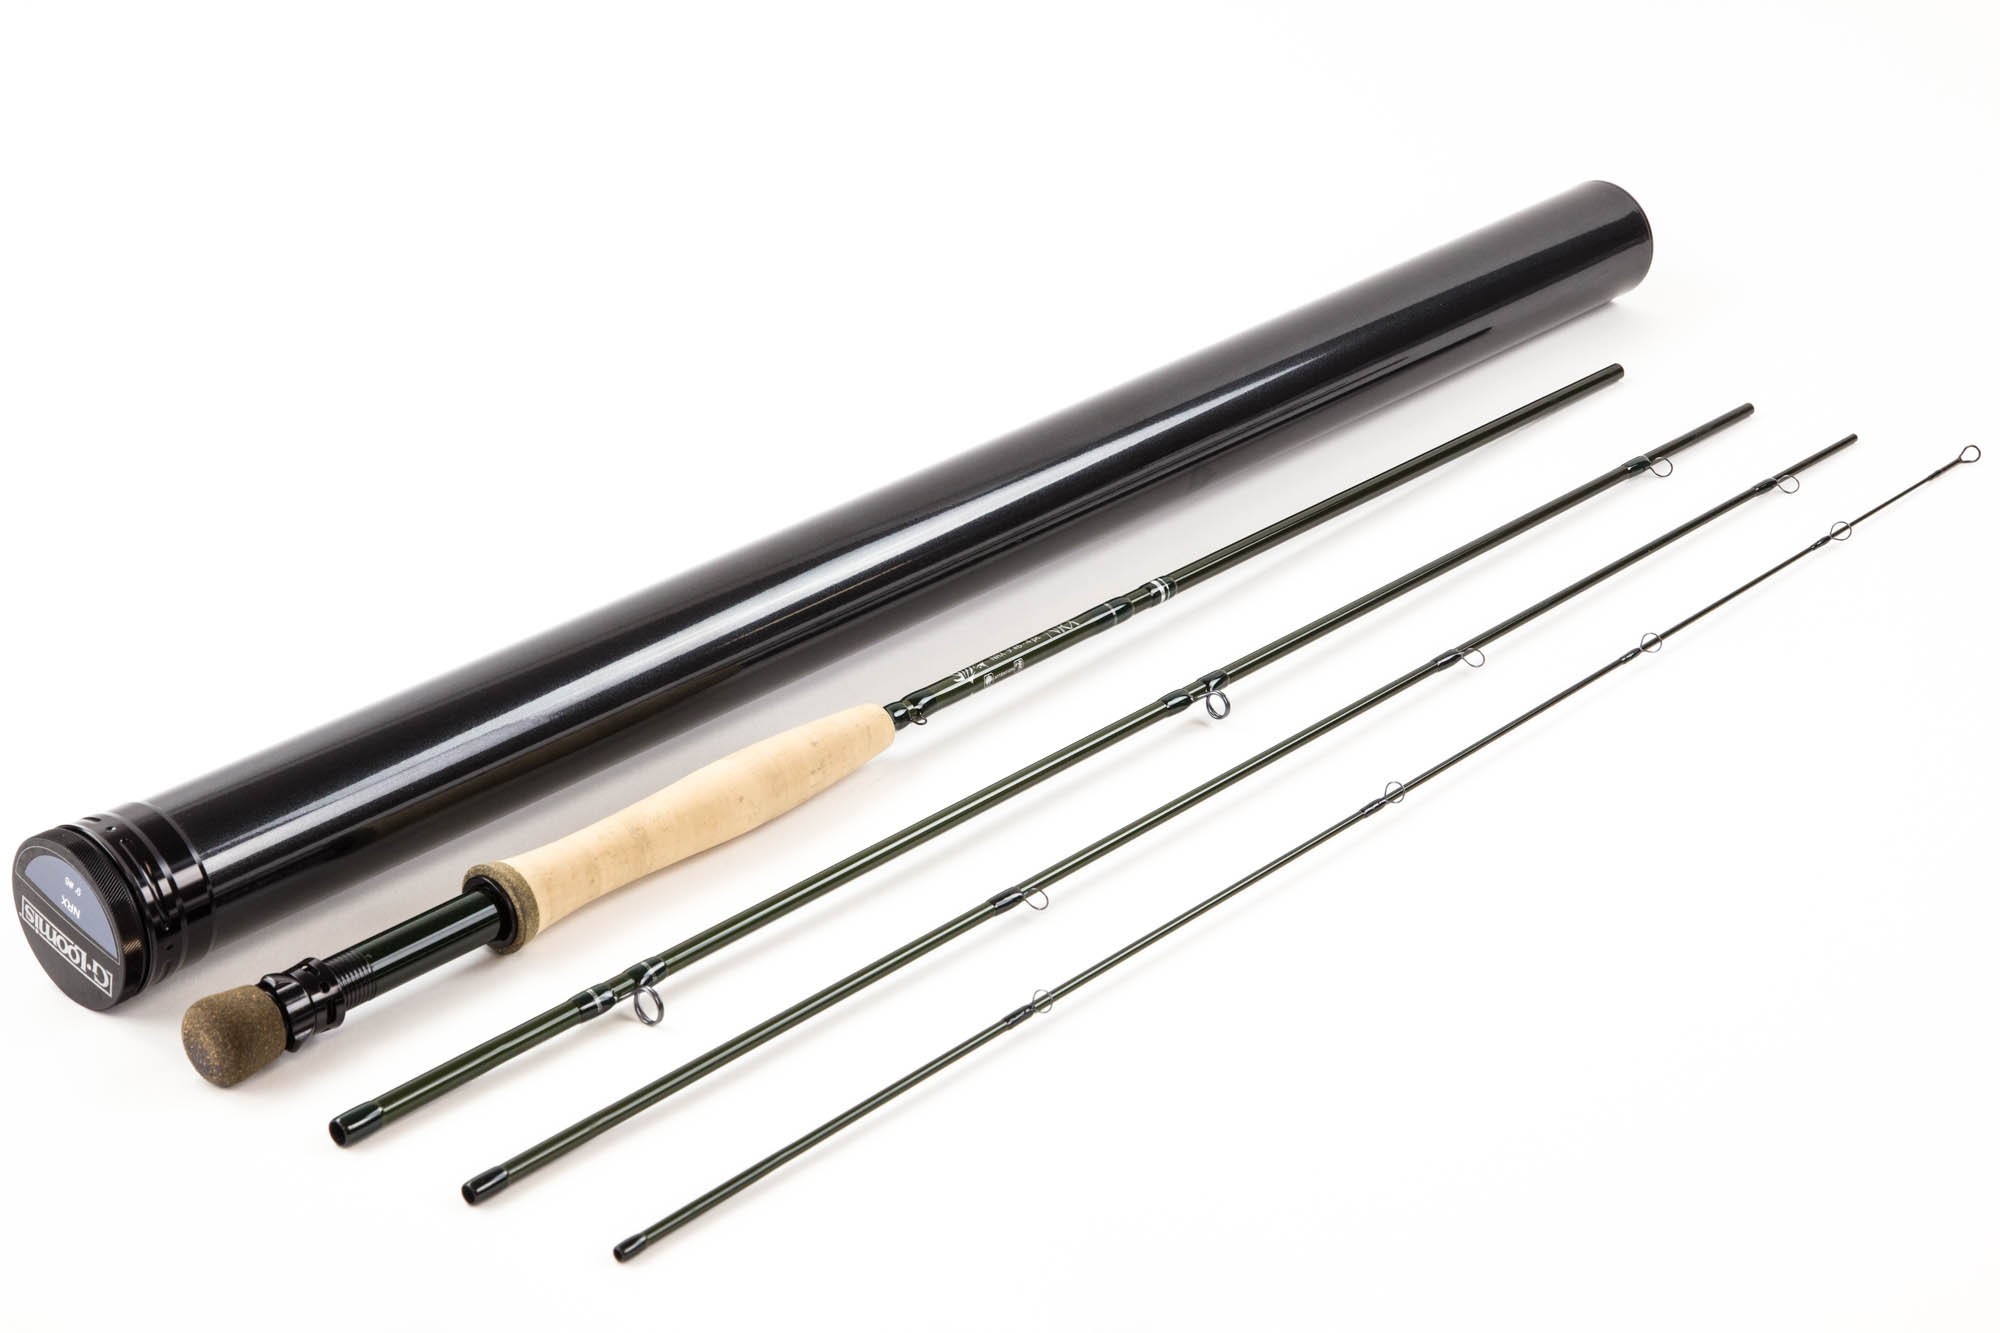 Wędka muchowa G.Loomis NRX Trout 9ft #6 wt6 fly fishing rod